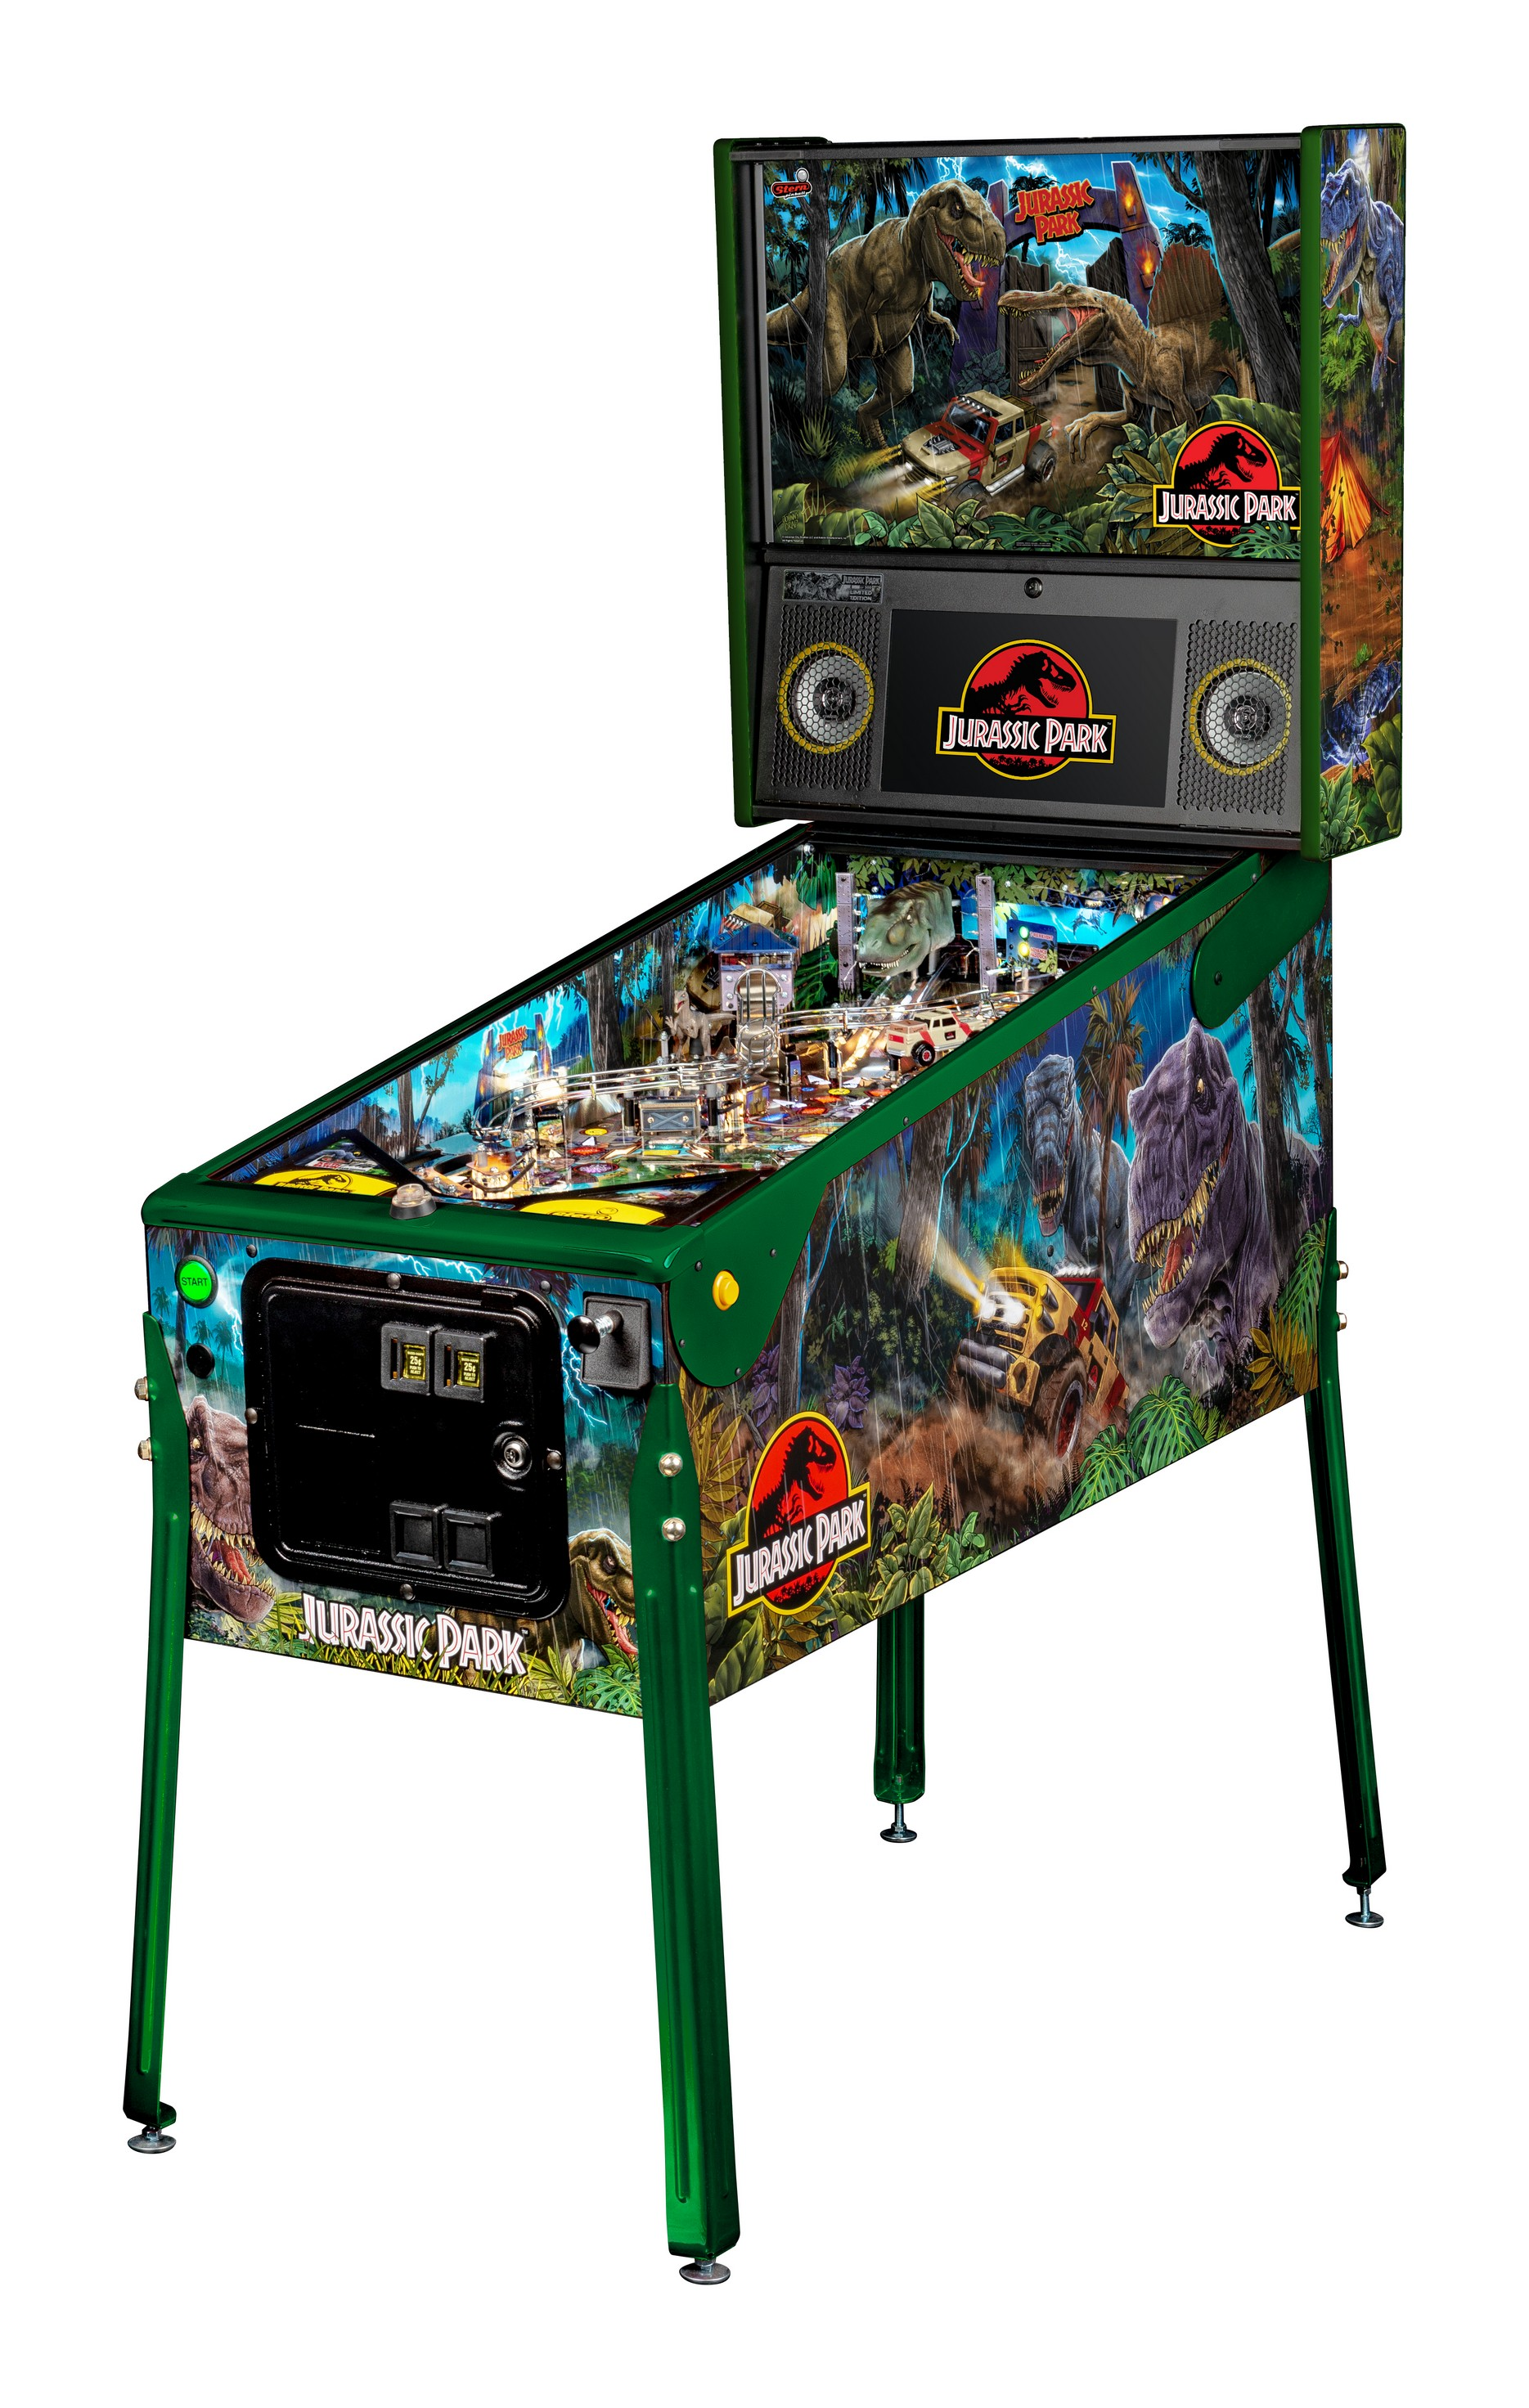 JURASSIC PARK LIMITED EDITION PINBALL - Full Sized Preview